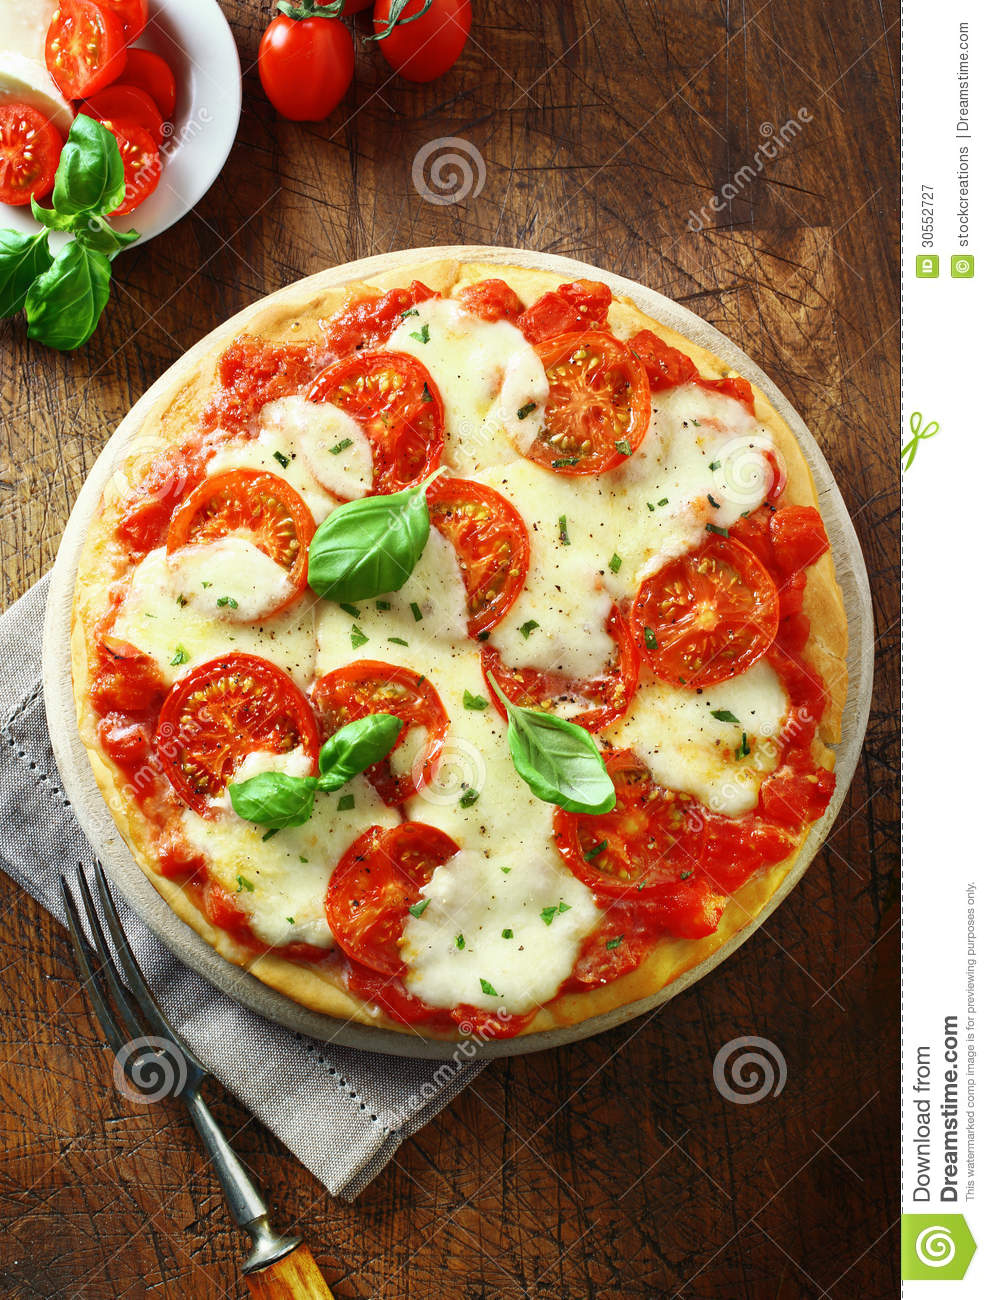 Freshly Baked Tomato And Cheese Pizza Royalty Free Stock